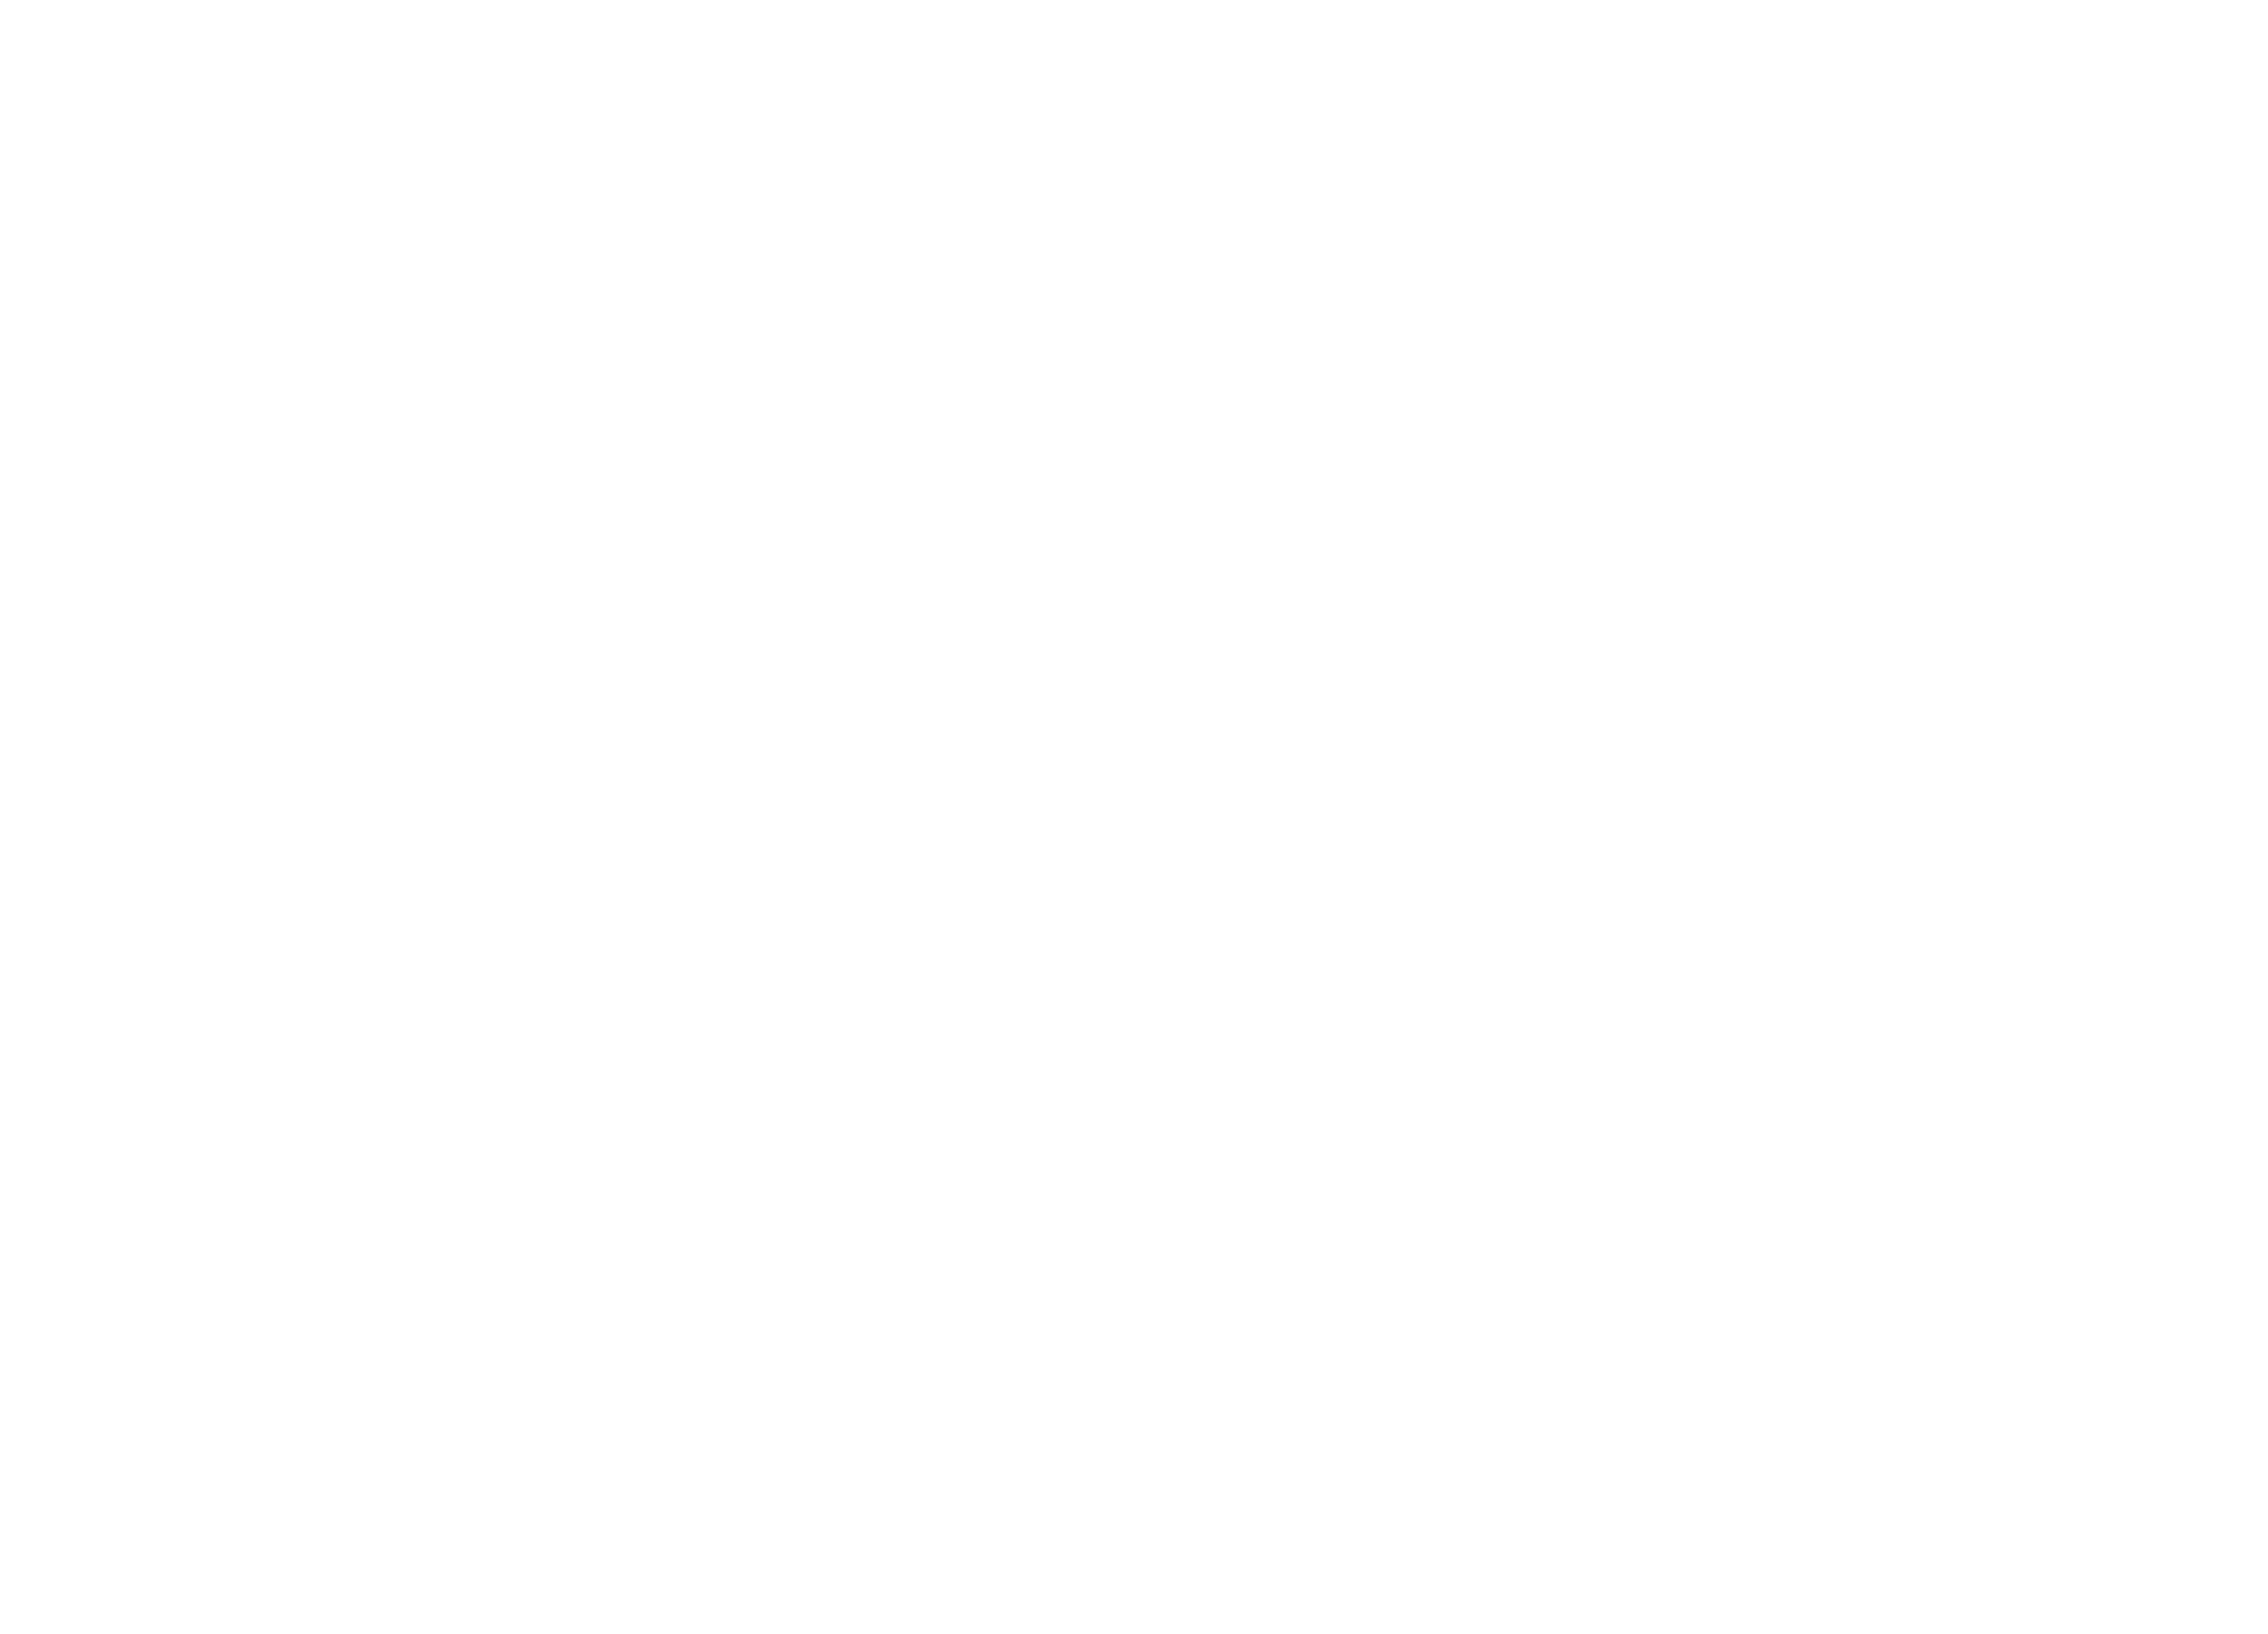 Create a Logo for ChainMaille Outlet to start our business out right.